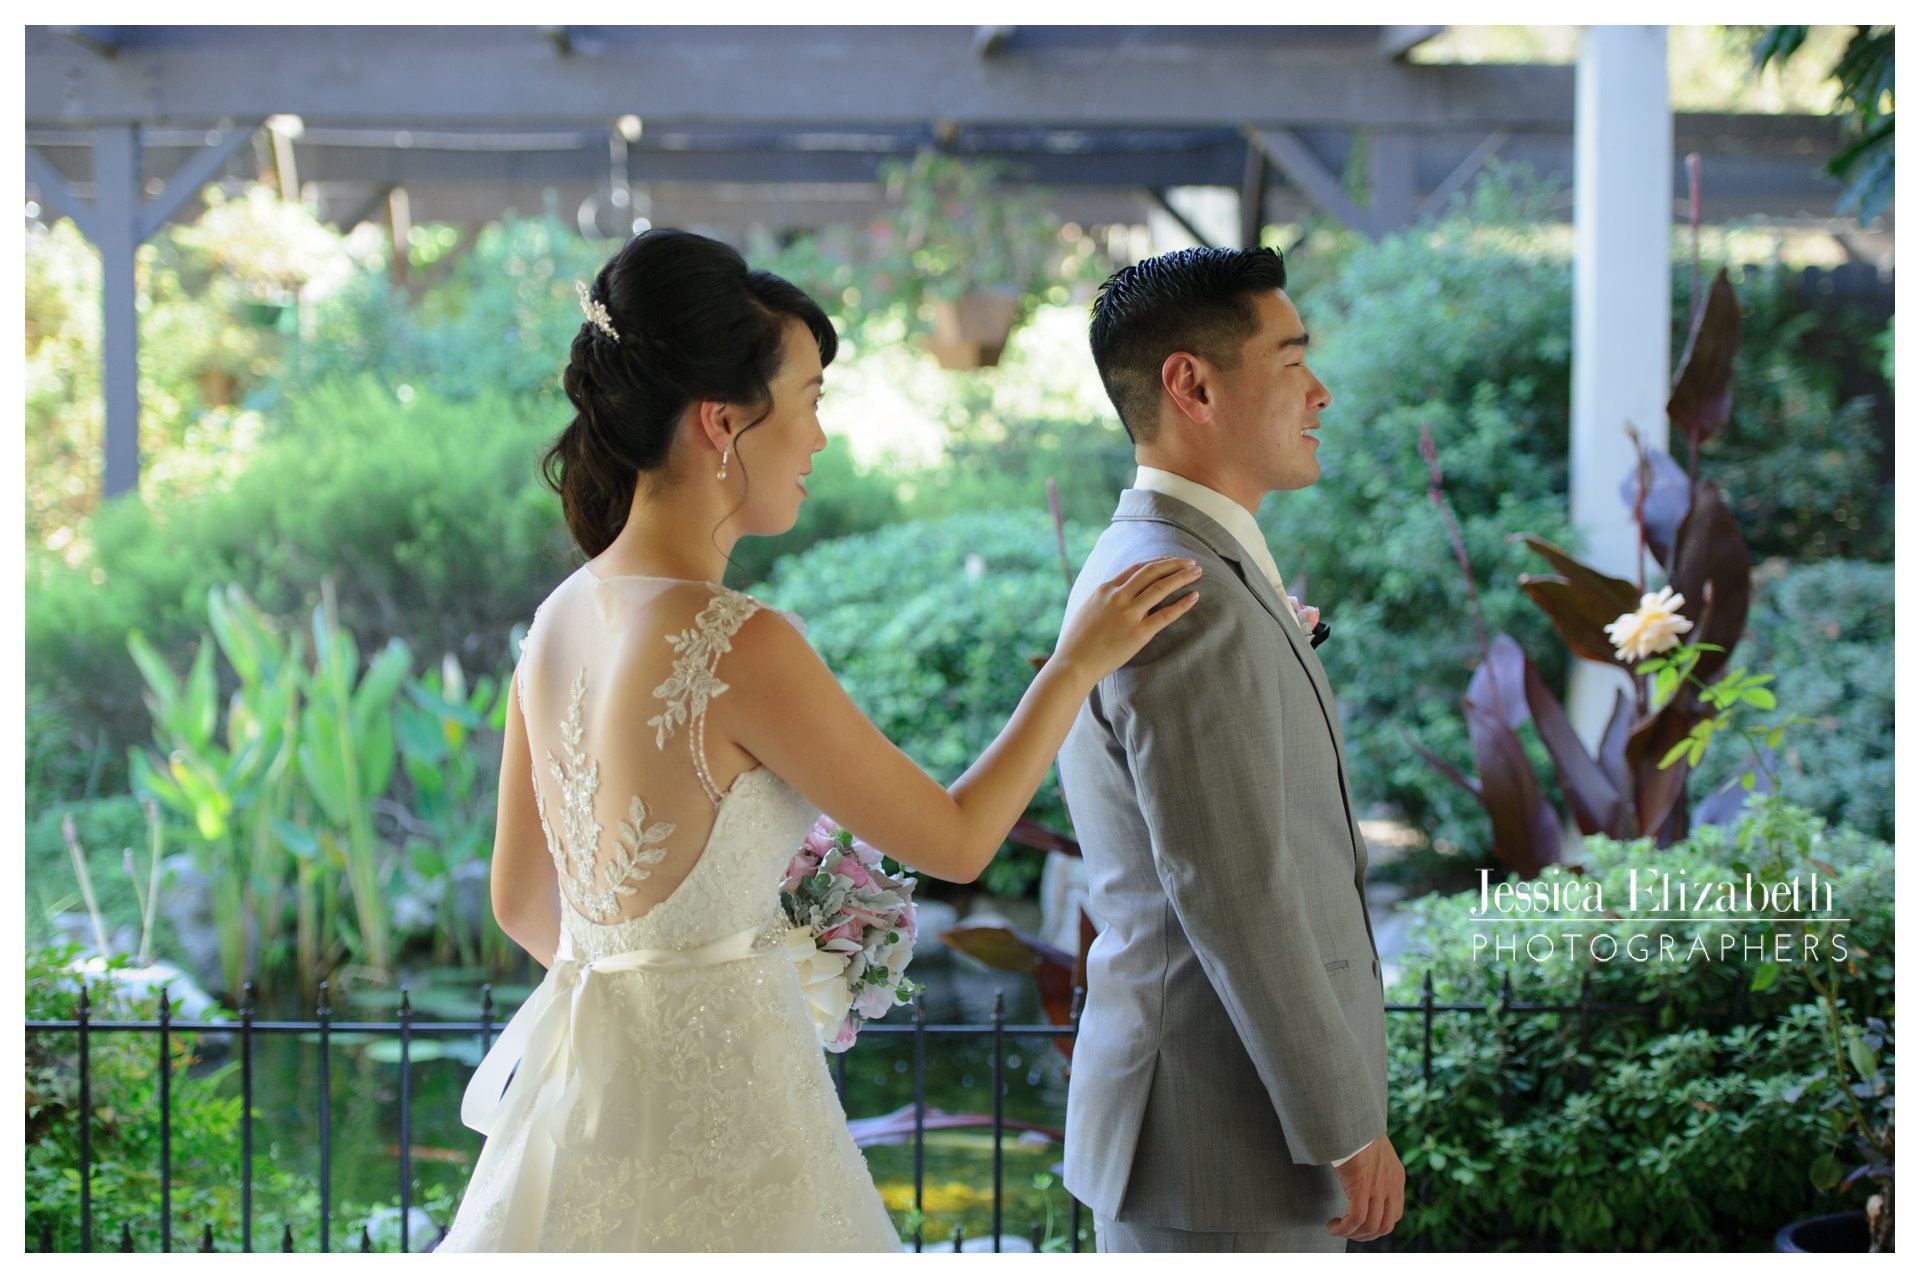 01-South-Coast-Botanic-Garden-Palos-Verdes-Wedding-Photography-by-Jessica-Elizabeth.jpg